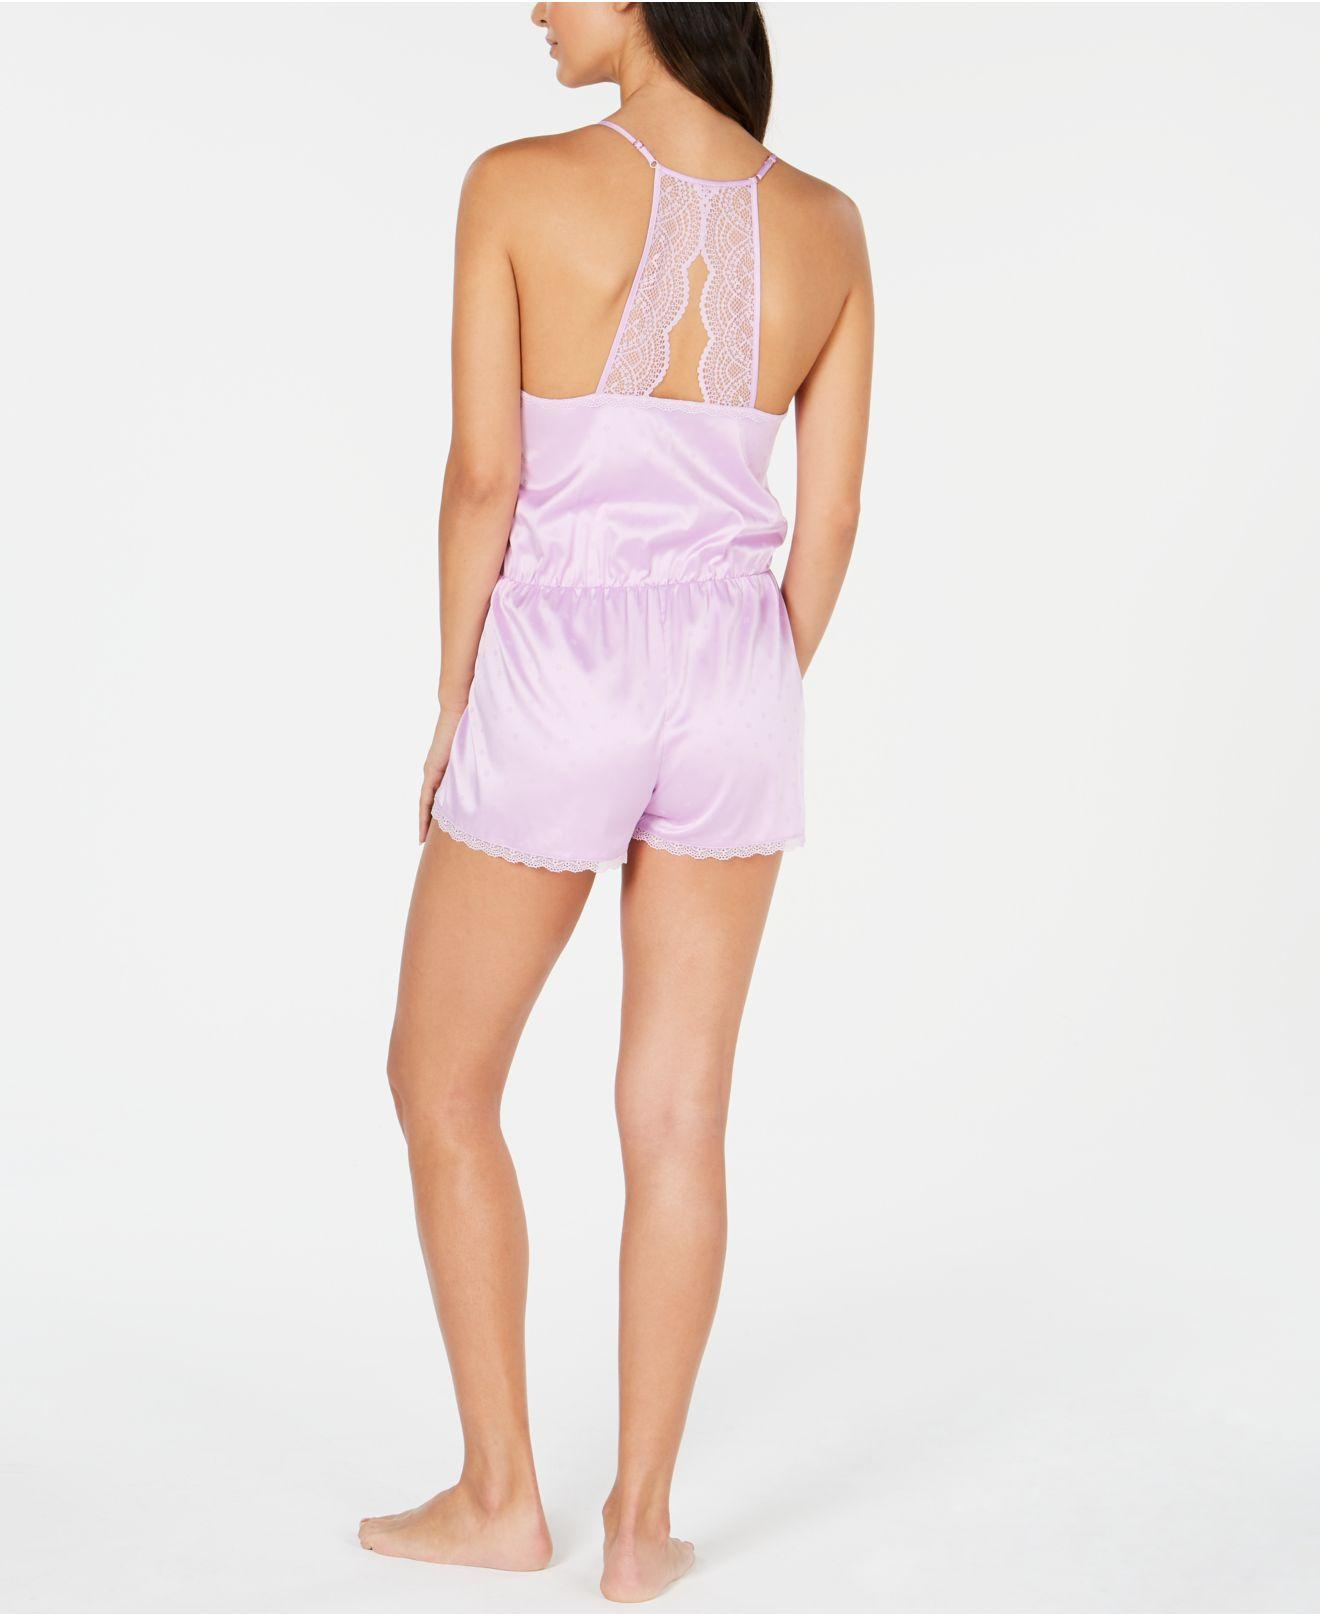 abe80326034d INC International Concepts I.n.c. Satin Lace-trimmed Jacquard Pajama  Romper, Created For Macy's in Purple - Lyst